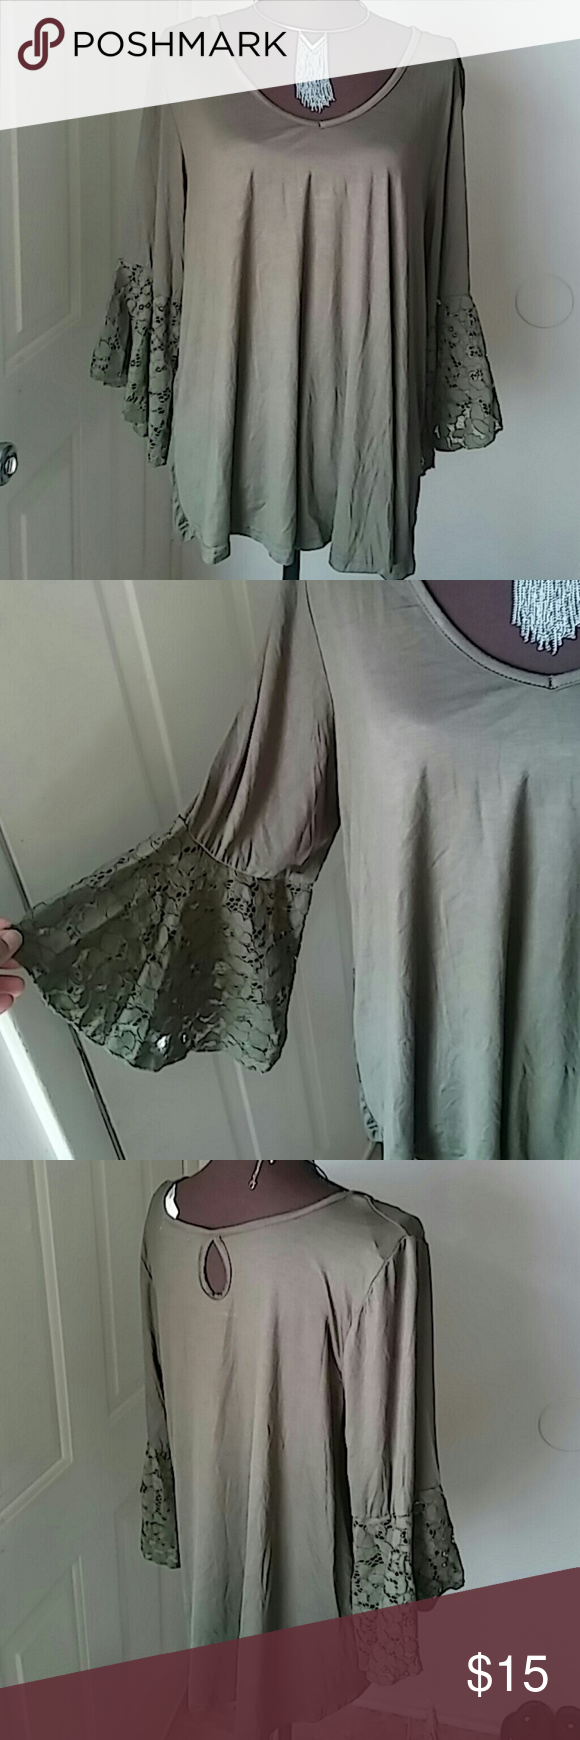 Woman's tunic. Very cute lace detail top. Brand new. Roommates Tops Tunics